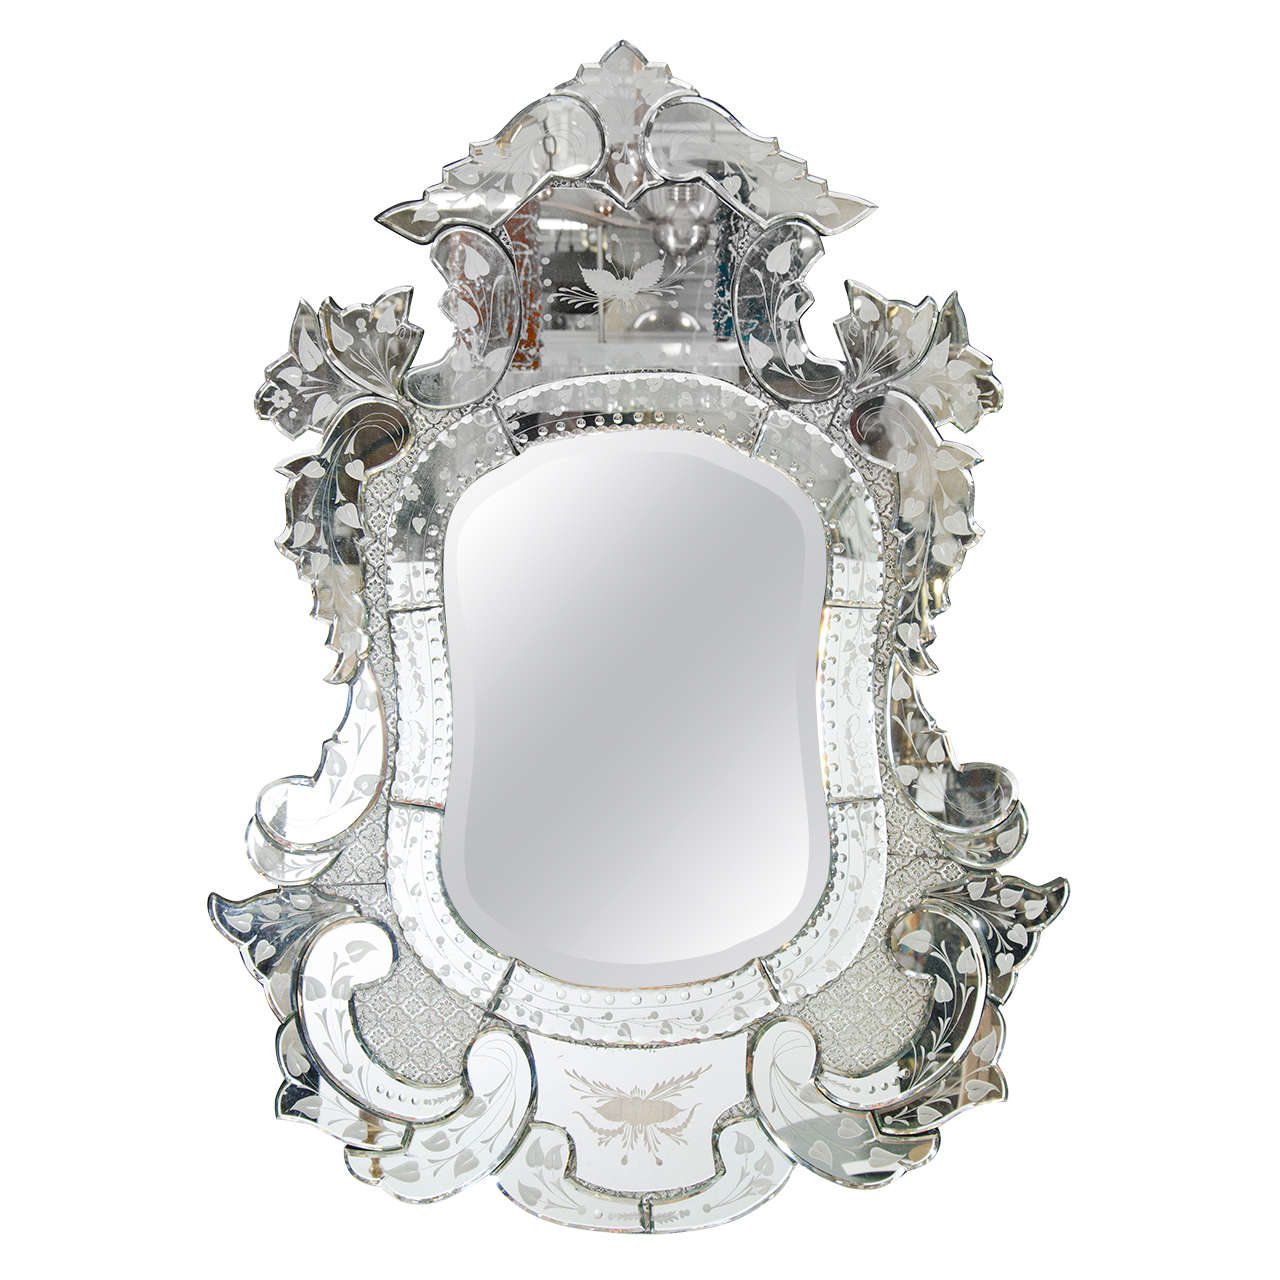 Vintage venetian ornately carved etched wall mirror at for Antique wall mirrors